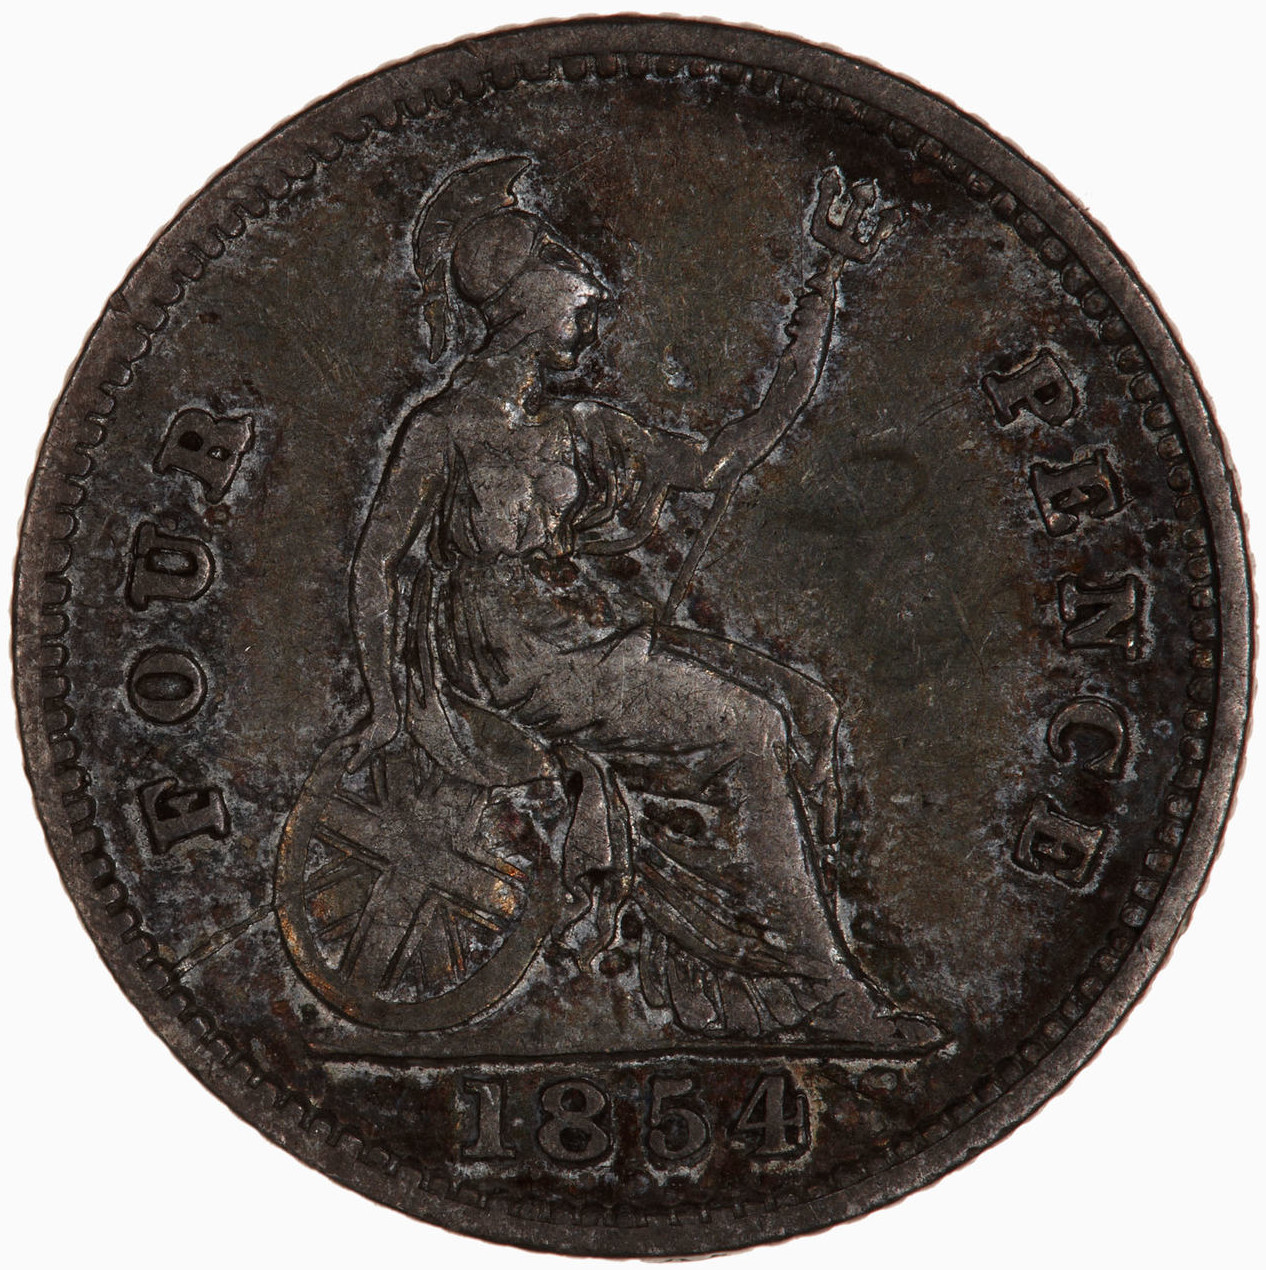 Fourpence 1854: Photo Coin - Groat, Queen Victoria, Great Britain, 1854